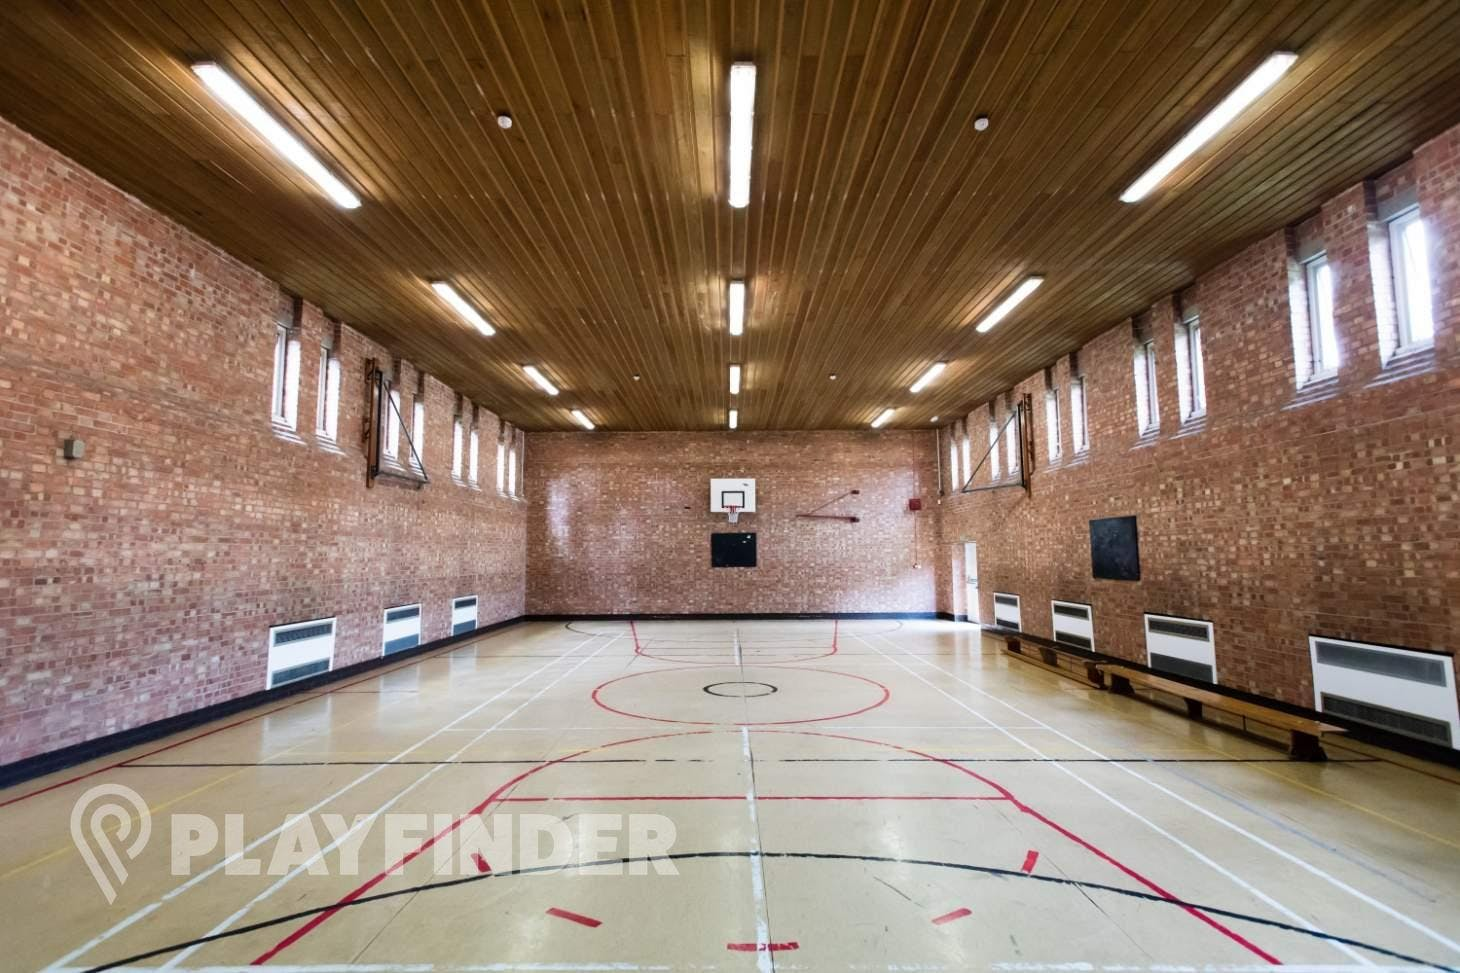 Marcus Lipton Community Enterprise Indoor basketball court